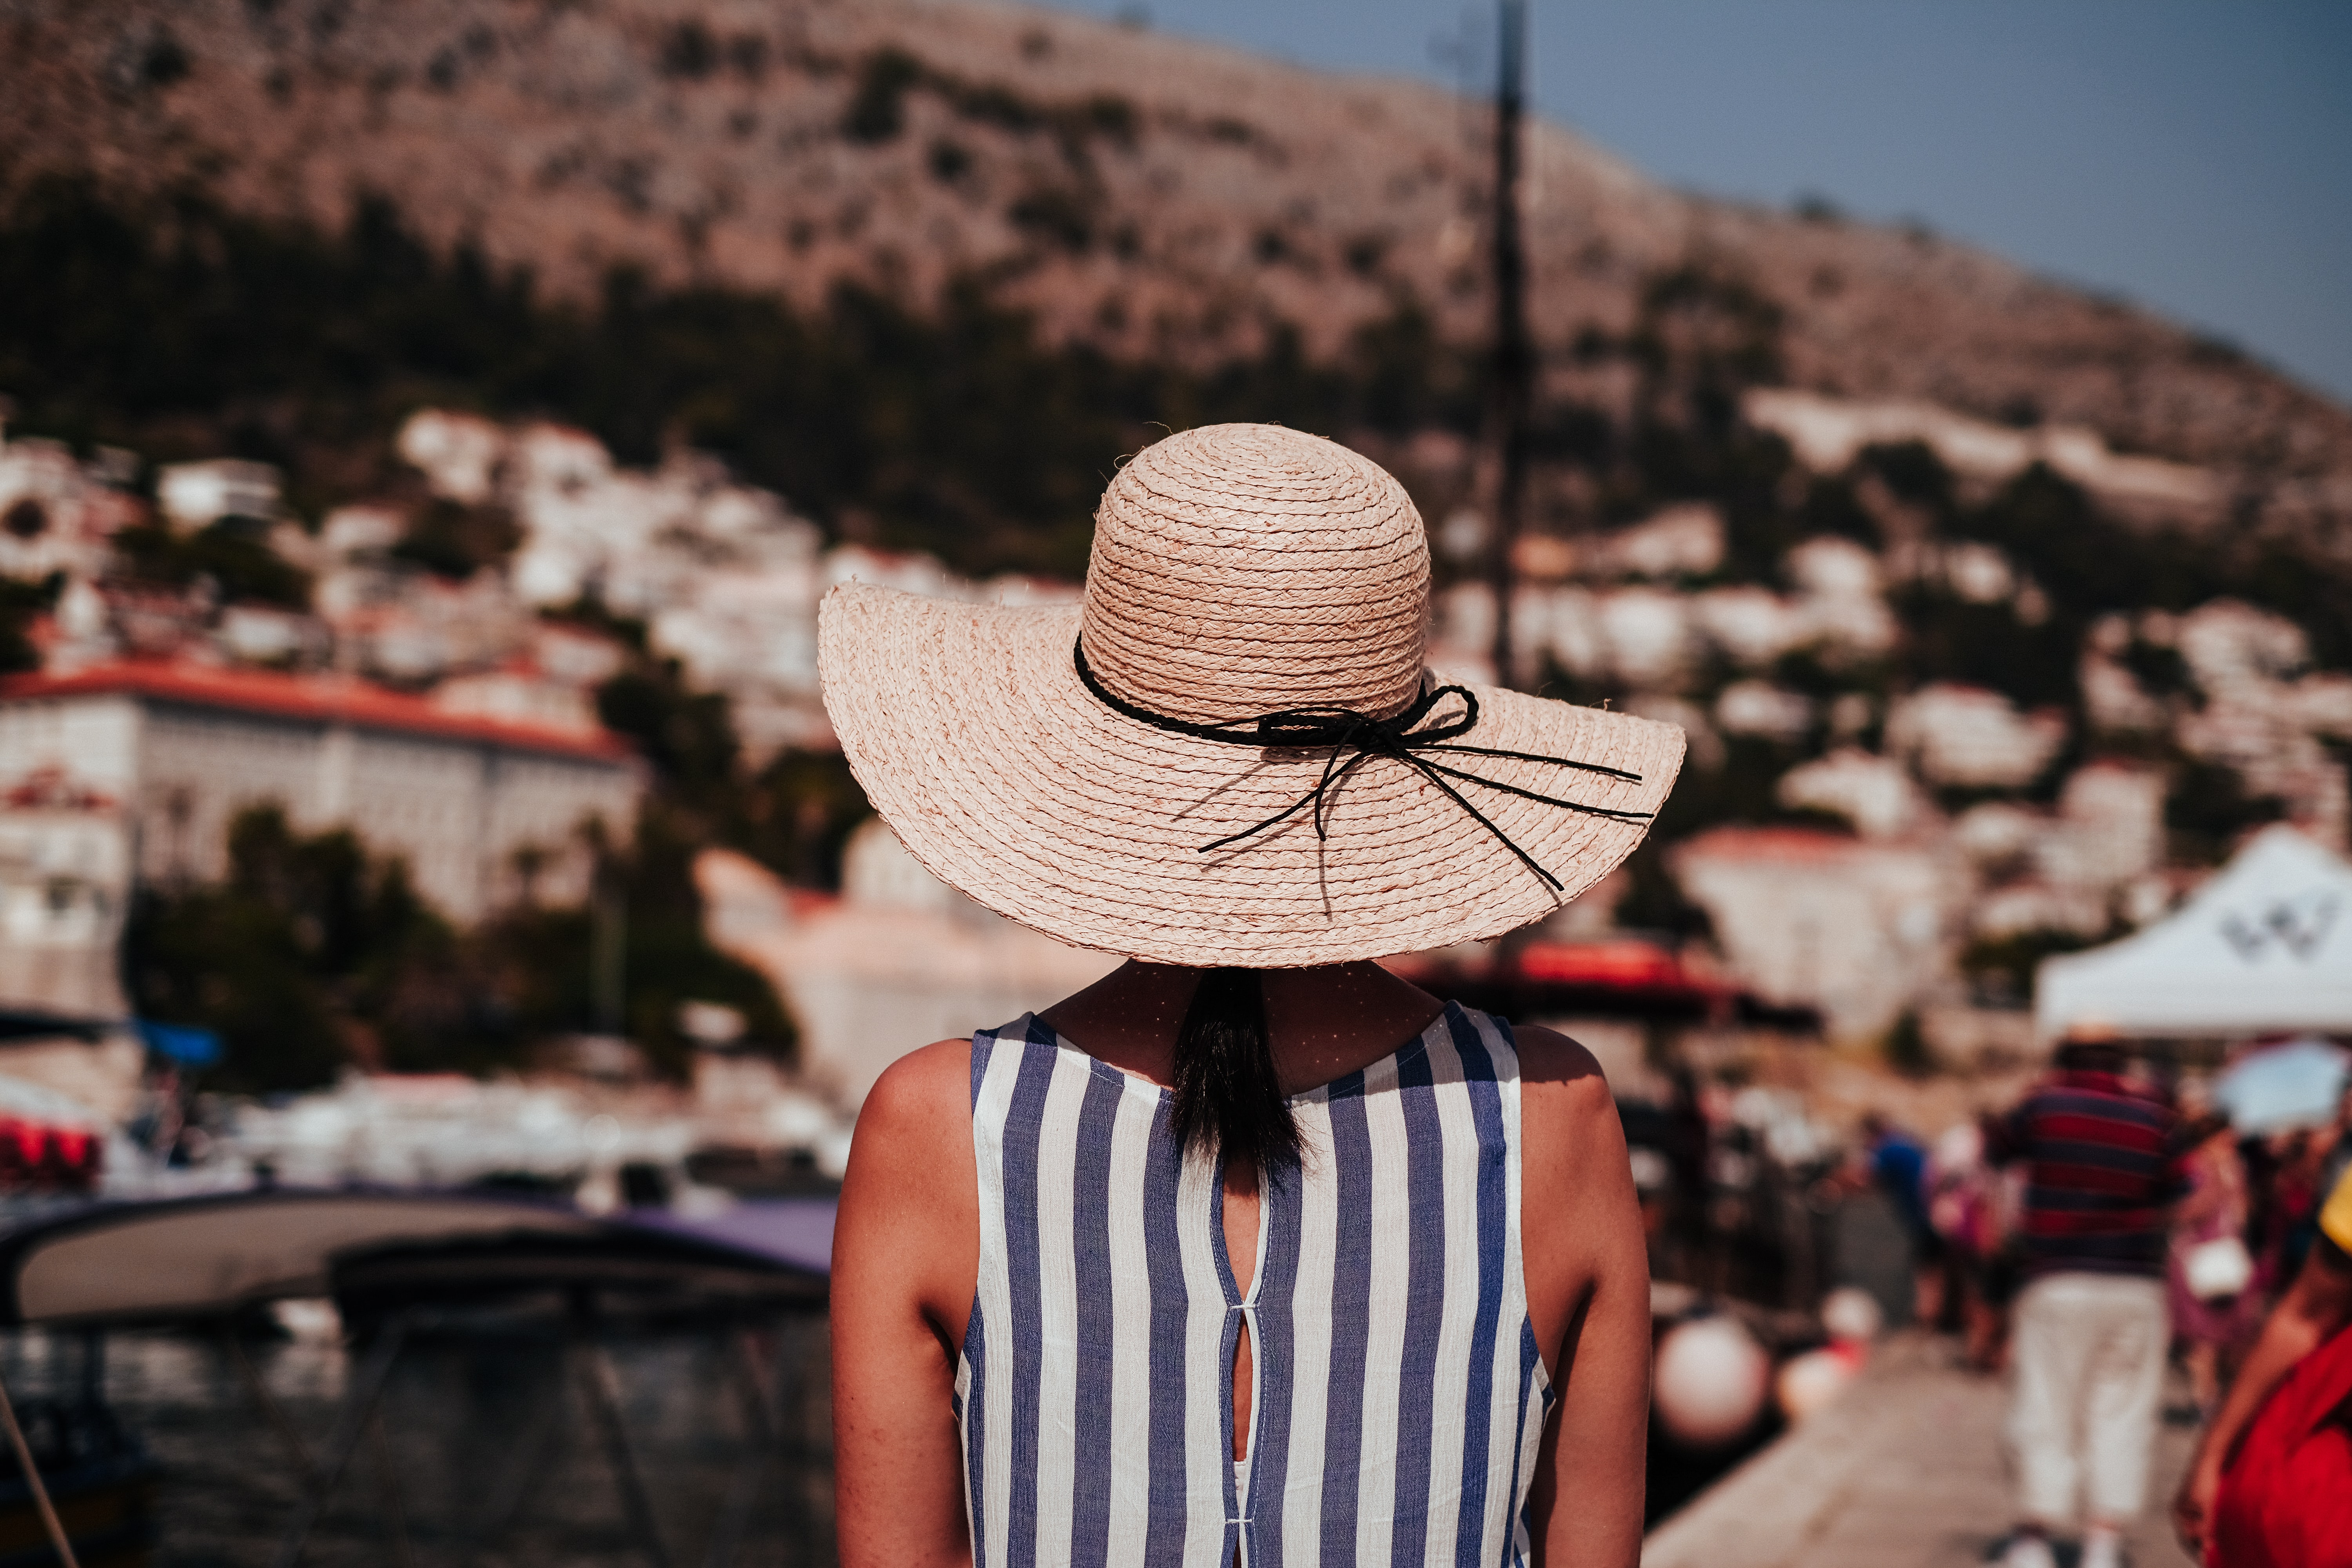 woman wearing gray and white striped sleeveless top and brown sun hat at daytime